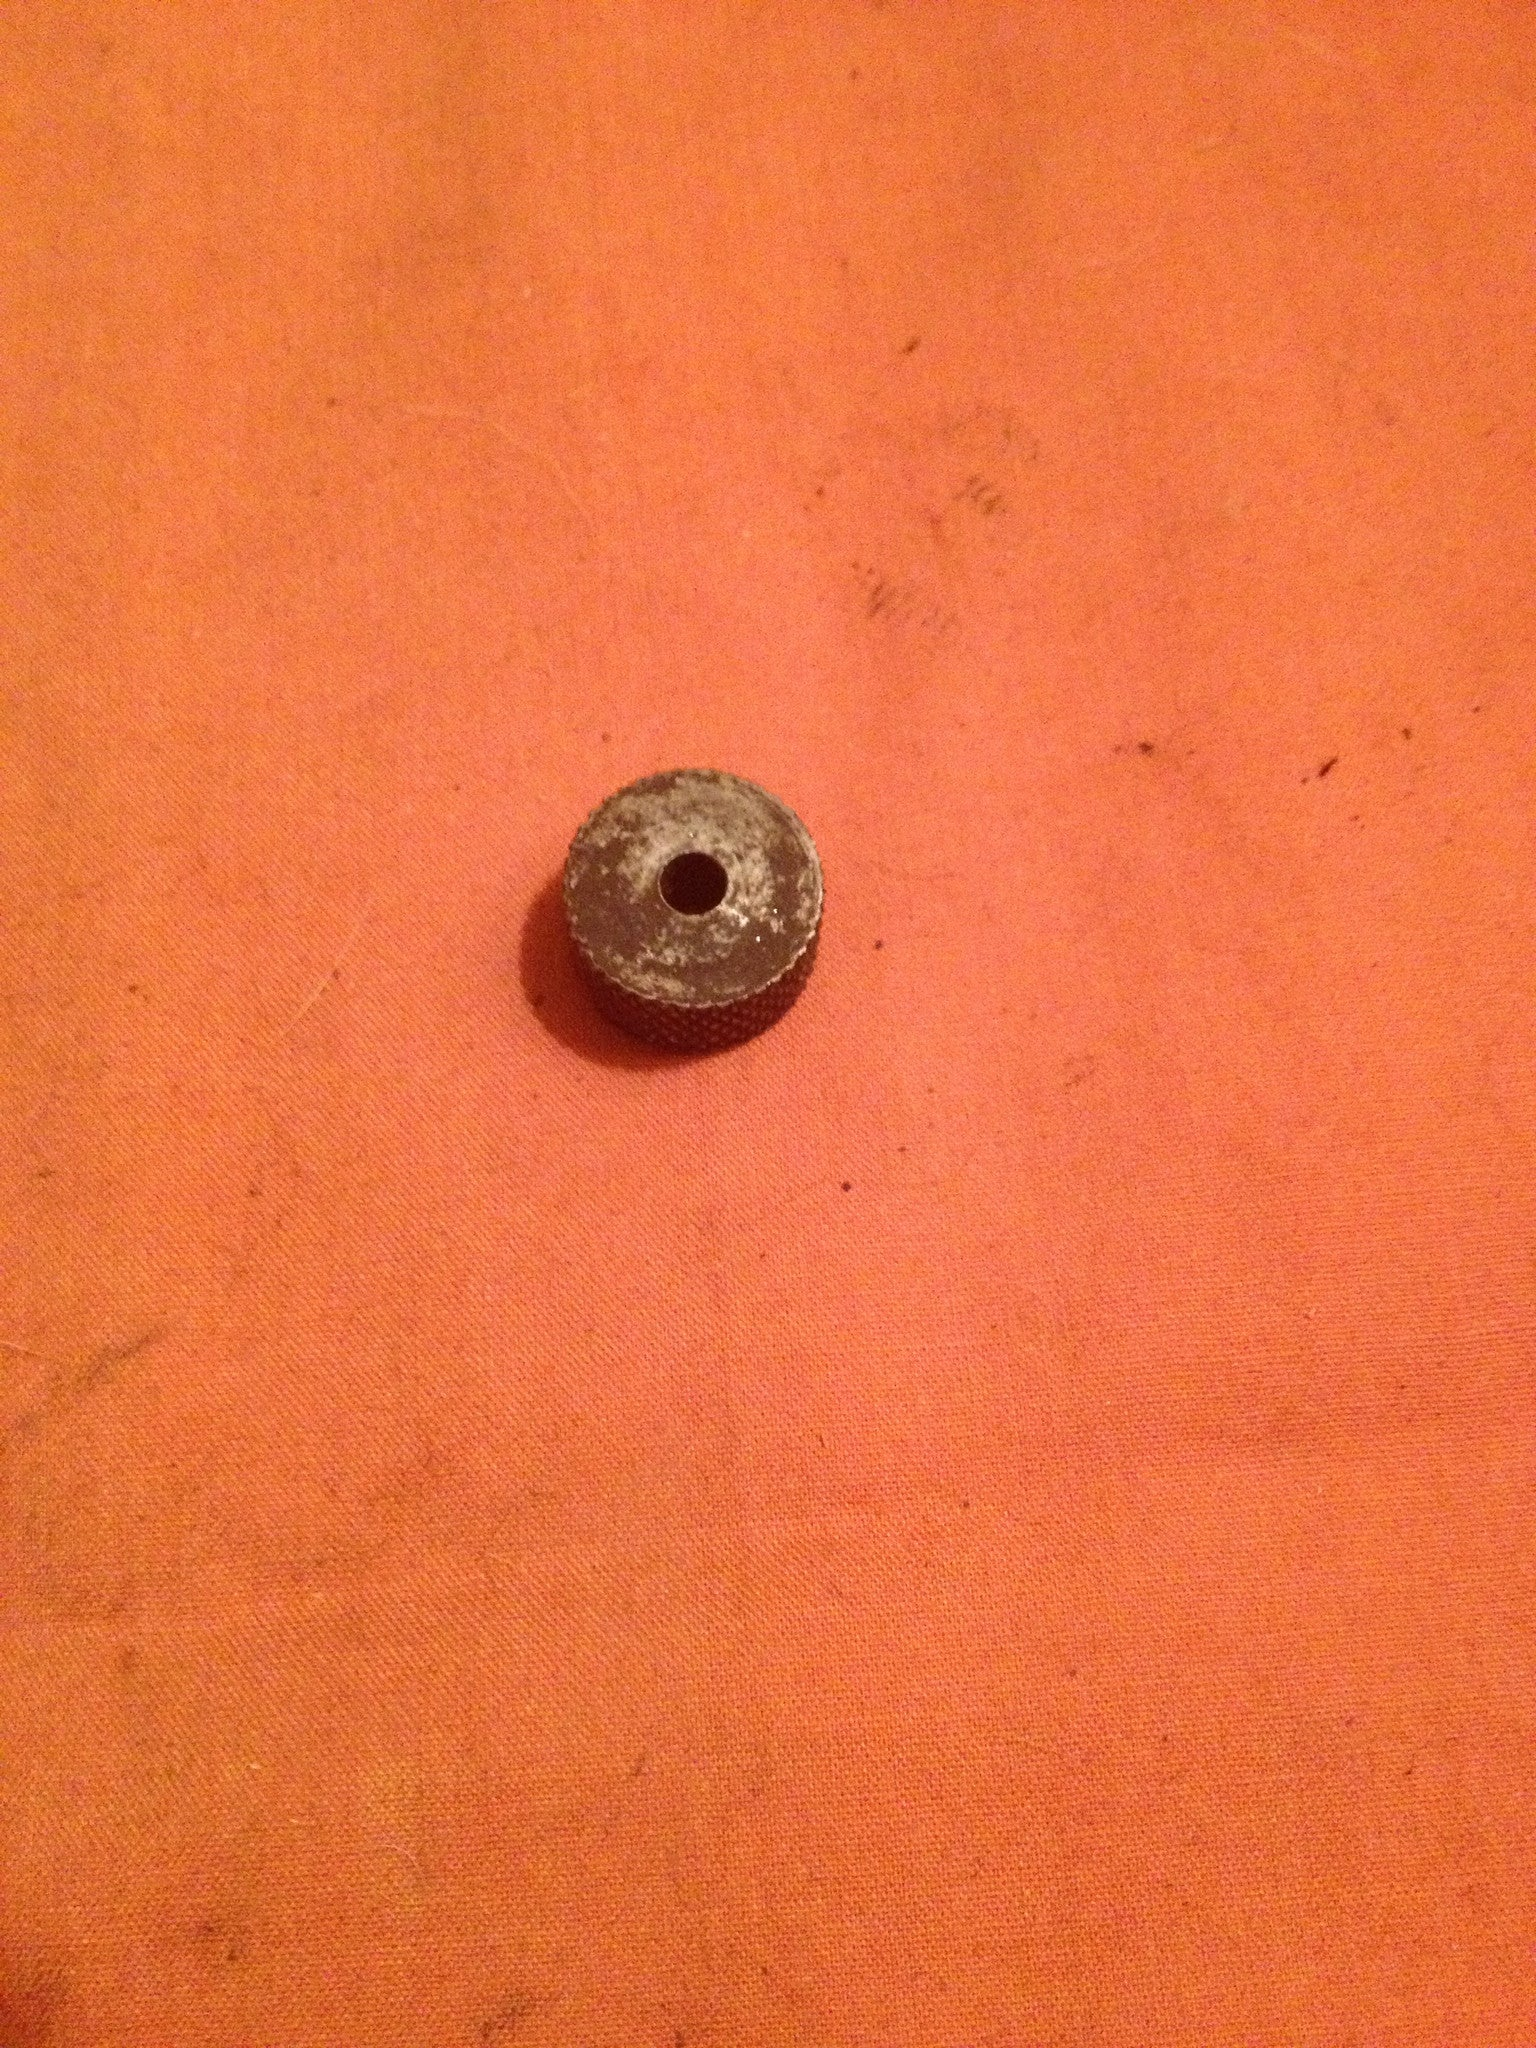 M1918a2 rear sight windage knob